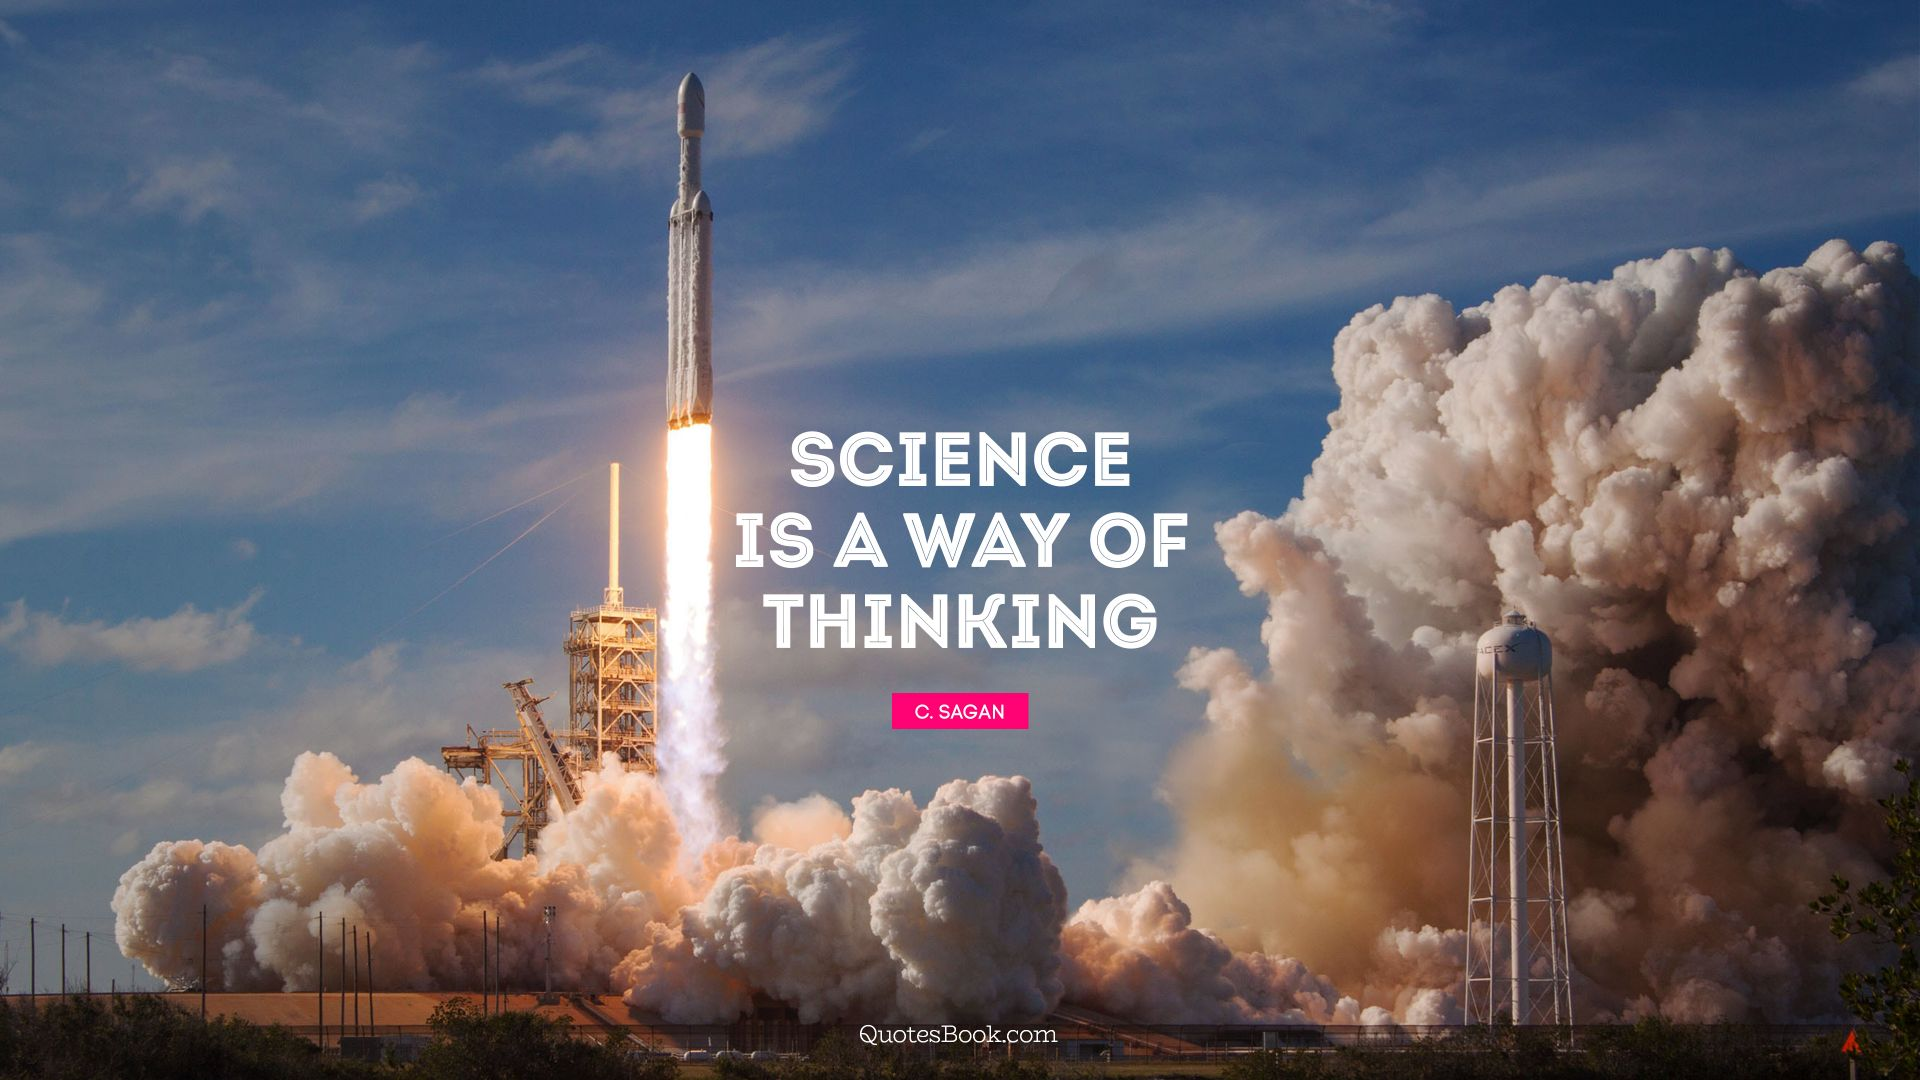 Science is a way of thinking. - Quote by C. Sagan